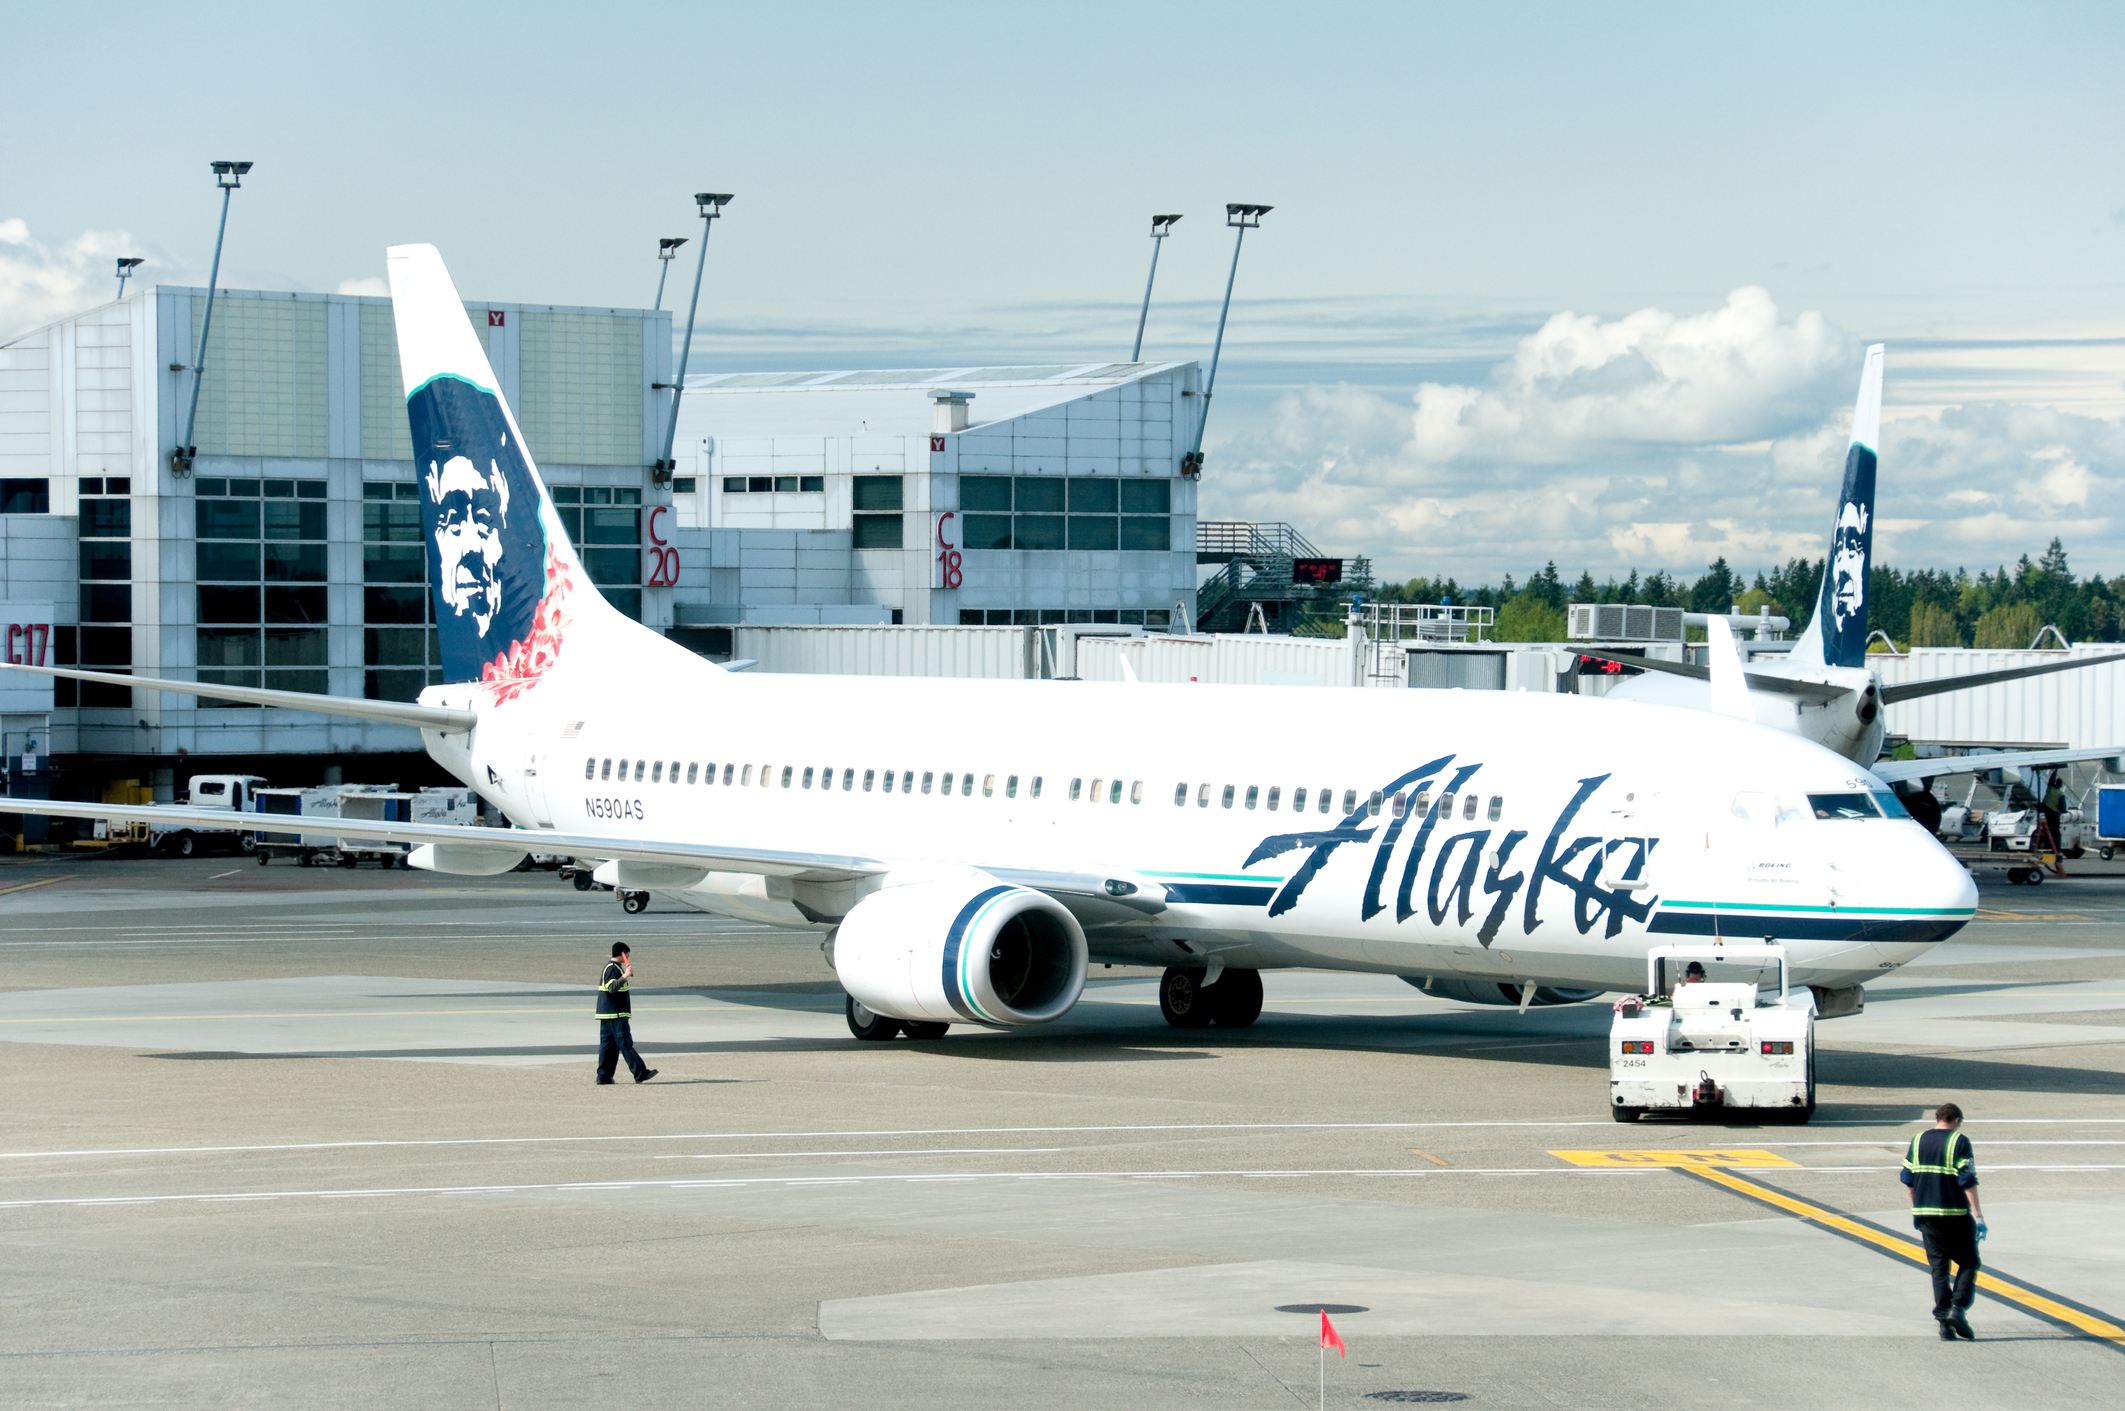 Code Is Bringing Computer Education To Alaska Airlines